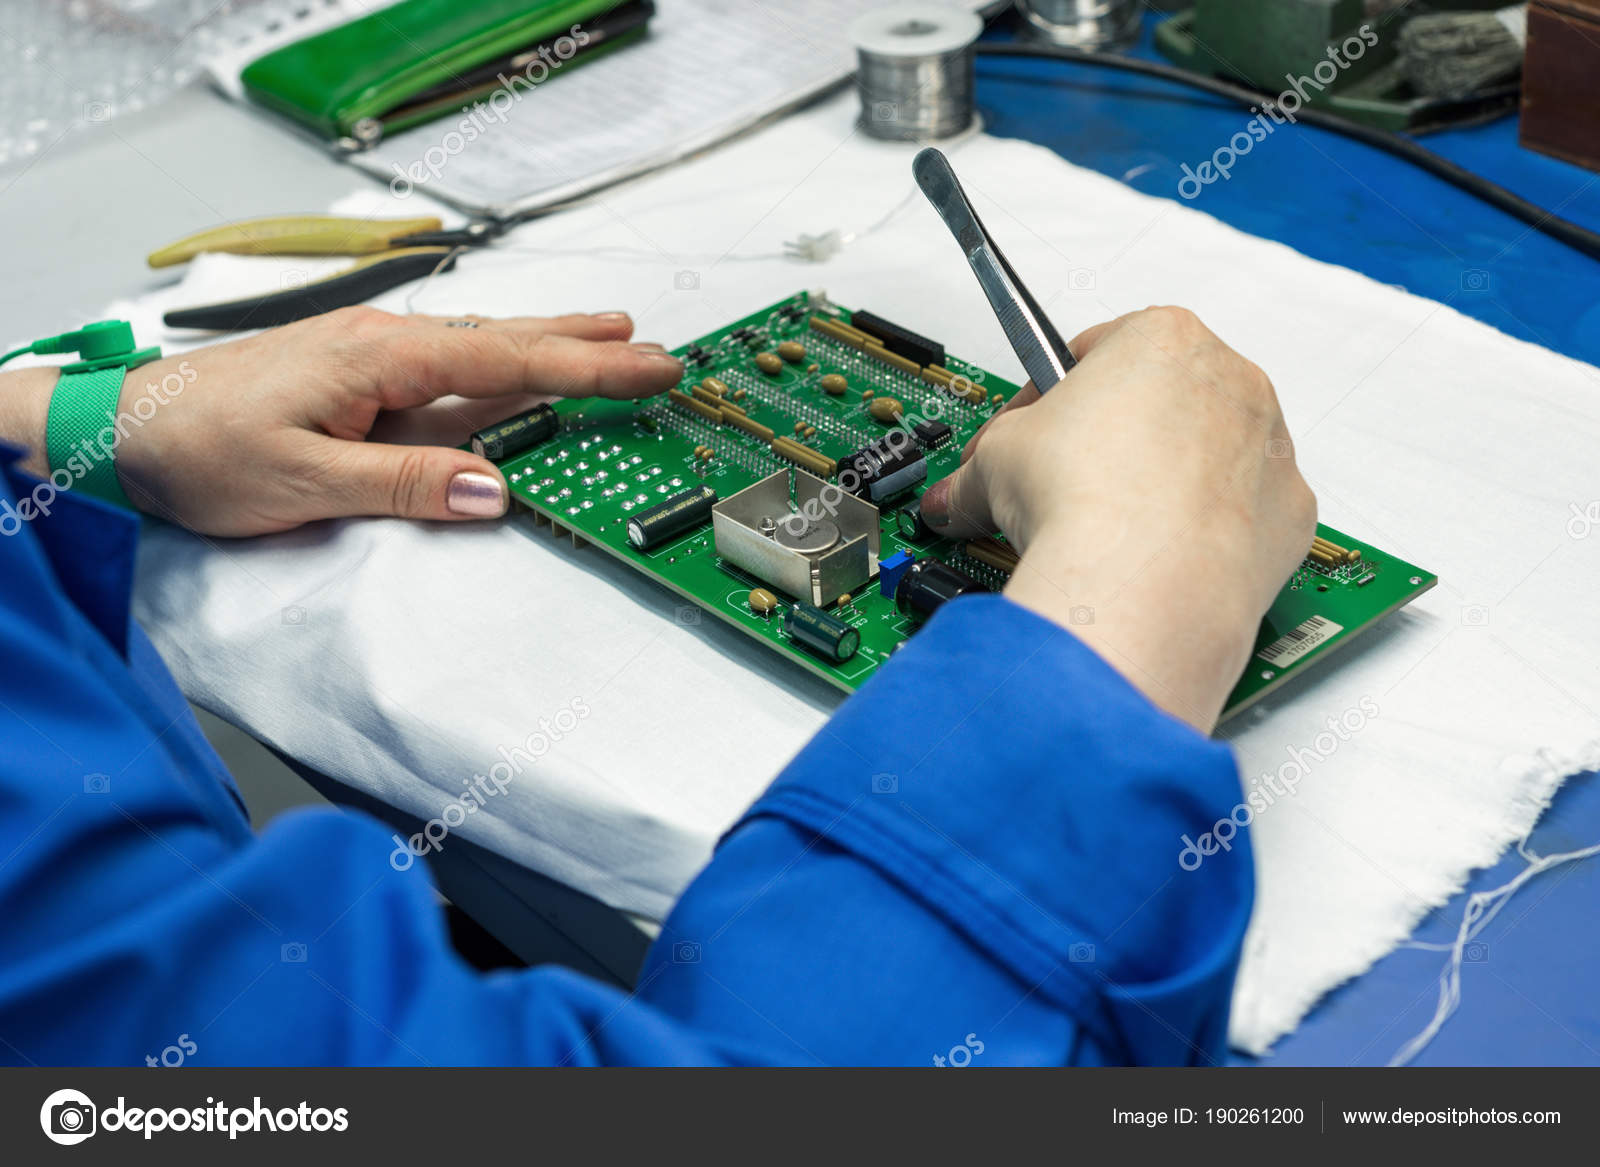 The Process Of Assembling An Electronic Module Workers Hands Completely Assembled Printed Circuit Board Place Components On